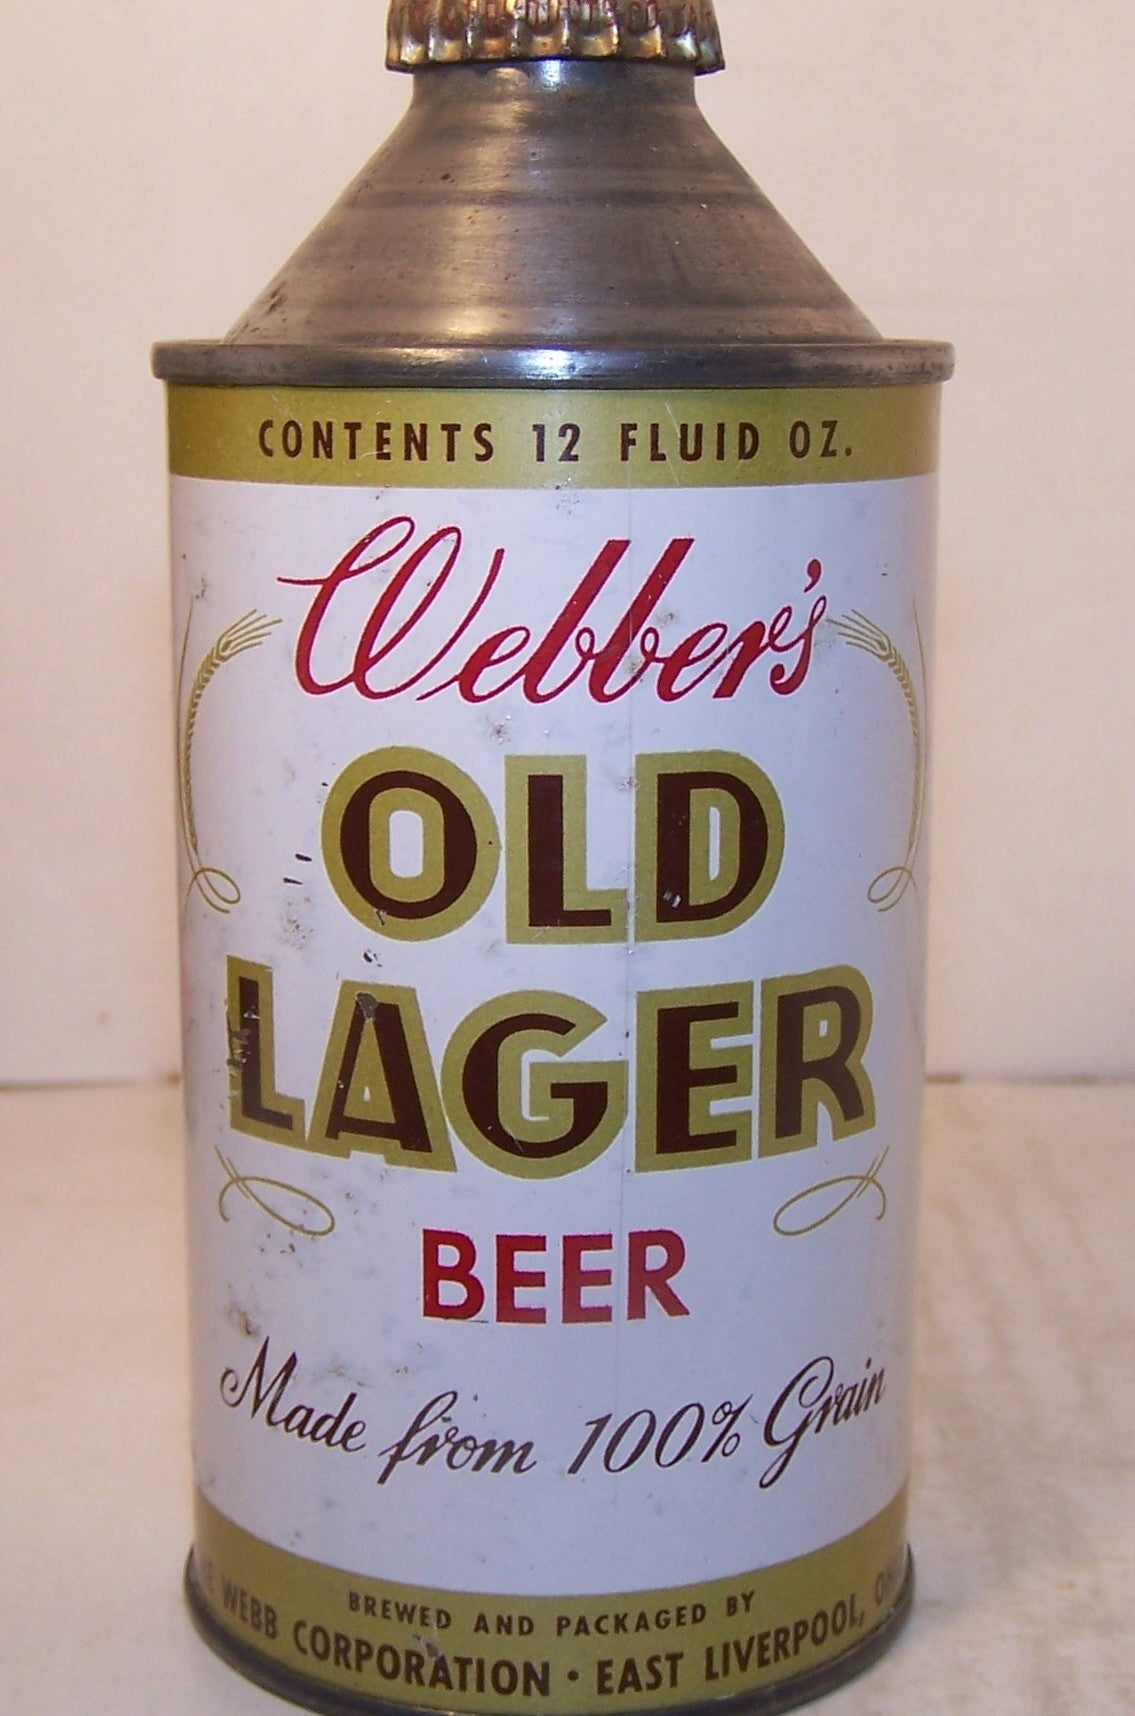 Webber's Old Lager Beer, USBC 188-27, Grade 1- Sold on 9/22/15